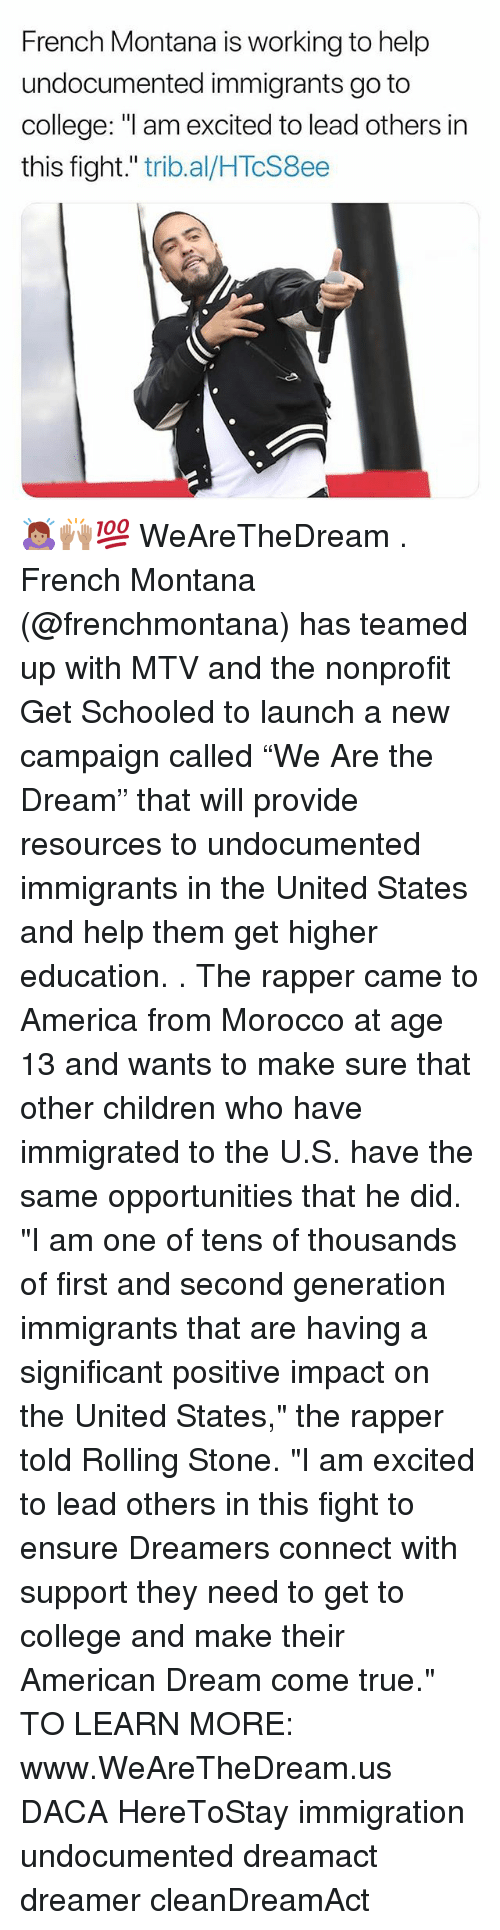 "Morocco: French Montana is working to help  undocumented immigrants go to  college: ""l am excited to lead others in  this fight."" trib.al/HTcS8ee 🙇🏽‍♀️🙌🏽💯 WeAreTheDream . French Montana (@frenchmontana) has teamed up with MTV and the nonprofit Get Schooled to launch a new campaign called ""We Are the Dream"" that will provide resources to undocumented immigrants in the United States and help them get higher education. . The rapper came to America from Morocco at age 13 and wants to make sure that other children who have immigrated to the U.S. have the same opportunities that he did. ""I am one of tens of thousands of first and second generation immigrants that are having a significant positive impact on the United States,"" the rapper told Rolling Stone. ""I am excited to lead others in this fight to ensure Dreamers connect with support they need to get to college and make their American Dream come true."" TO LEARN MORE: www.WeAreTheDream.us DACA HereToStay immigration undocumented dreamact dreamer cleanDreamAct"